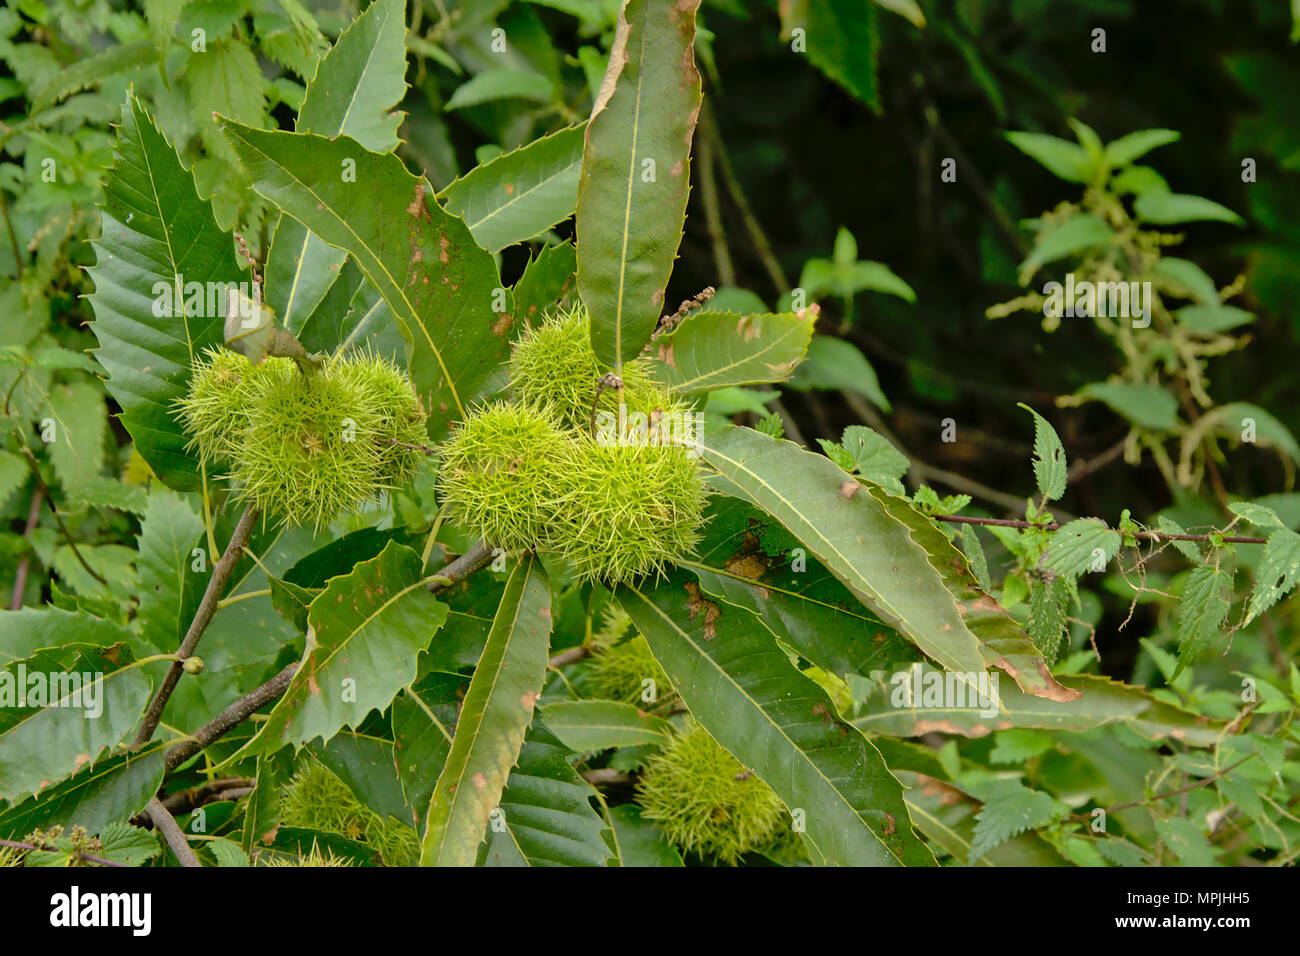 Unripe green sweet chestnut fruits and leaves, selective focus - Castanea sativa - Stock Image